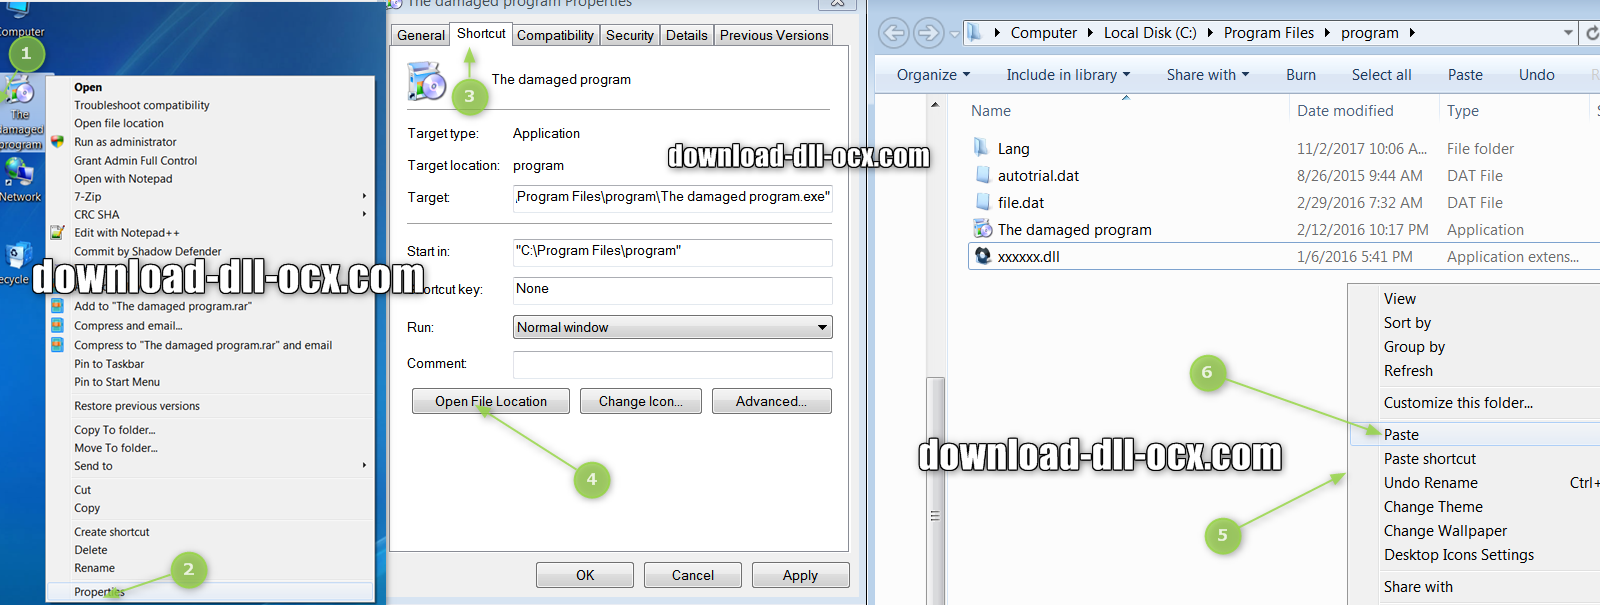 how to install TrellianDialogs.dll file? for fix missing